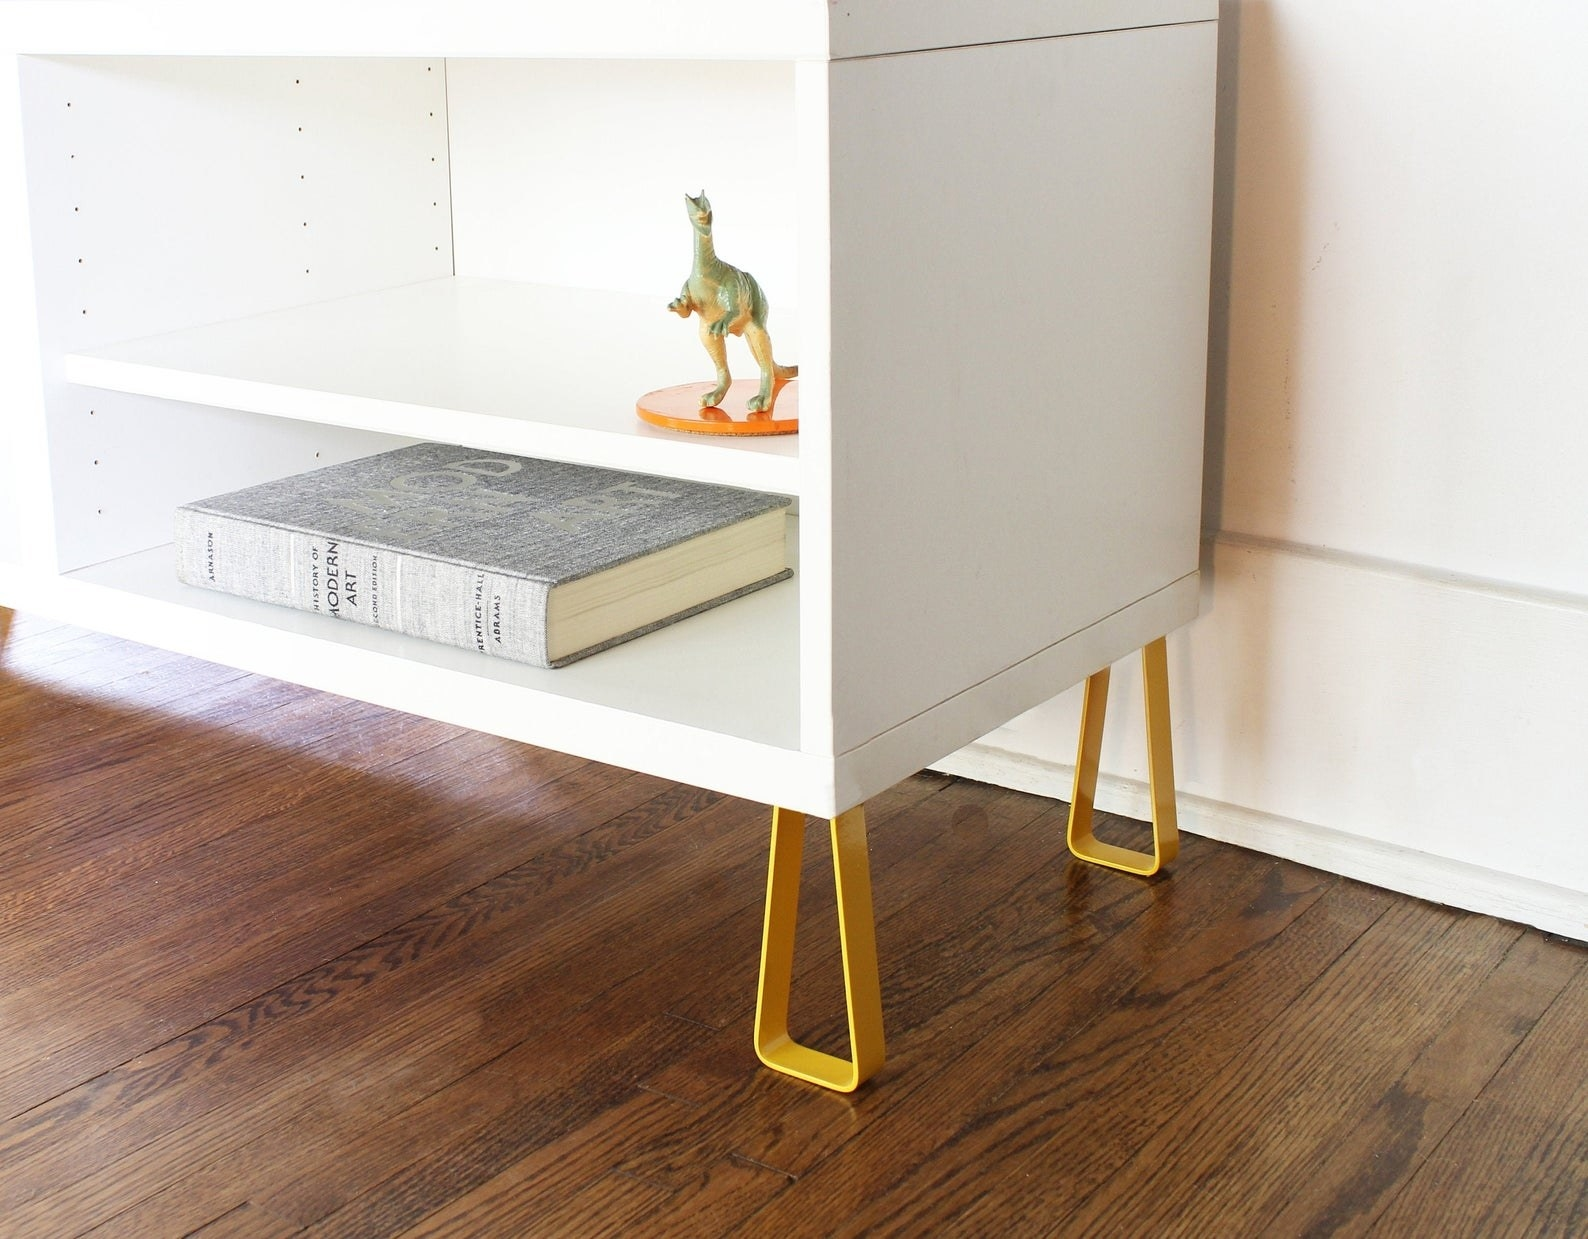 the yellow legs attached to a white ikea cabinet